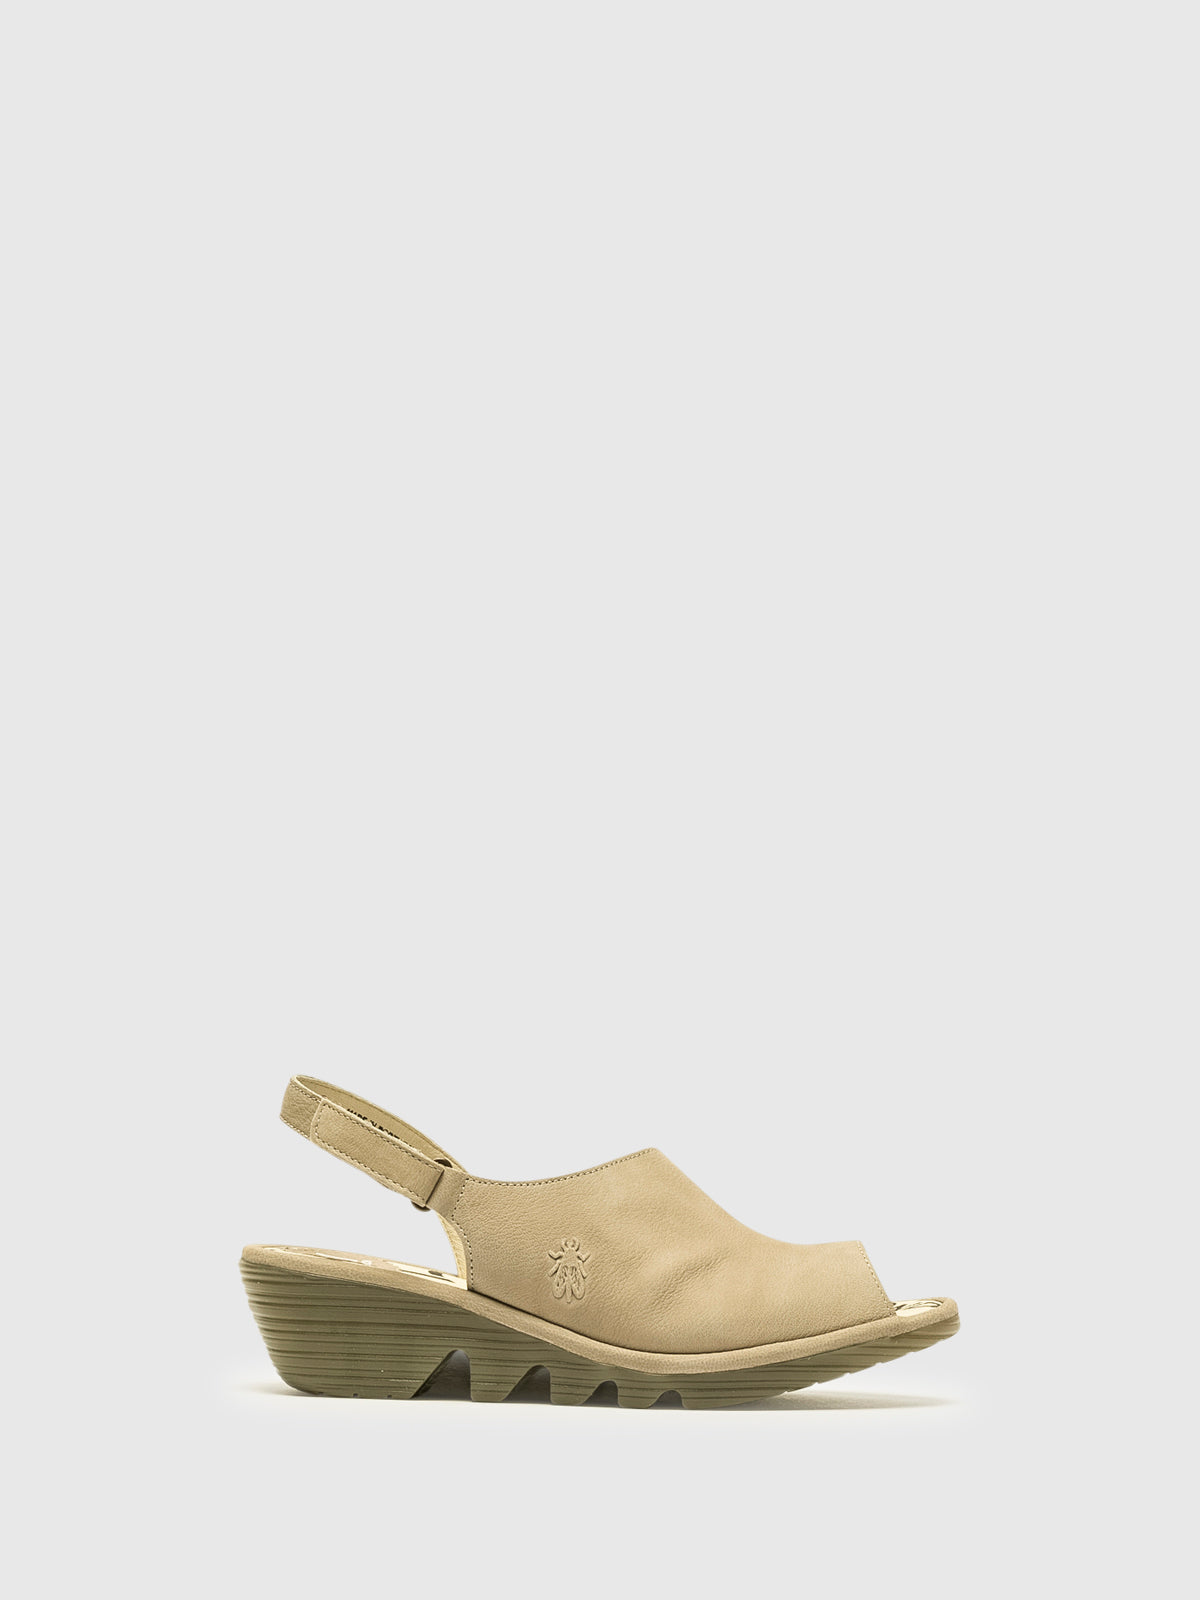 Fly London Tan Velcro Sandals